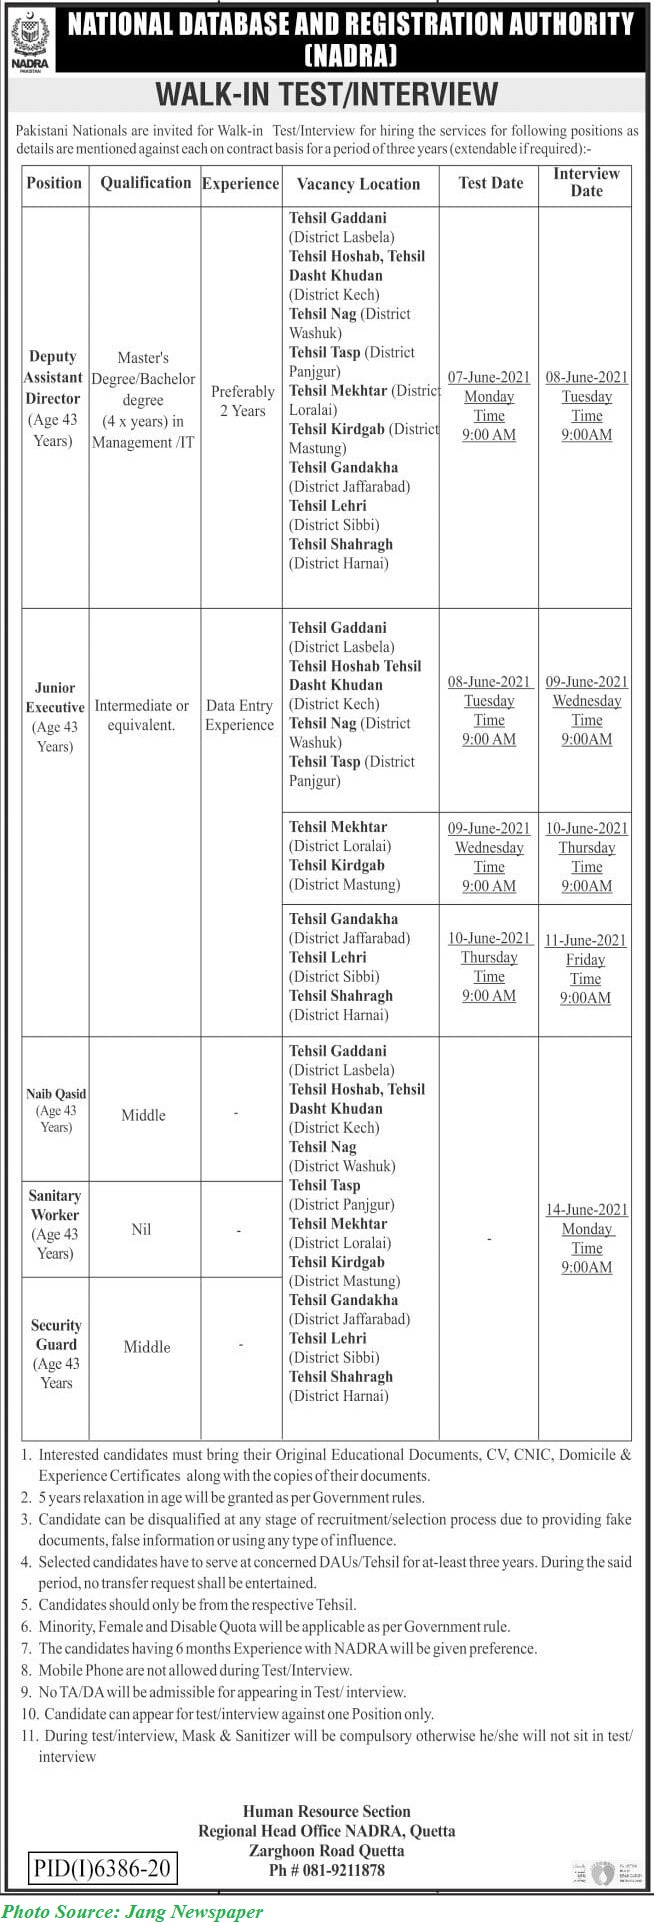 NADRA Jobs 2021 - Latest Jobs in National Database and Registration Authority Walkin Interviews